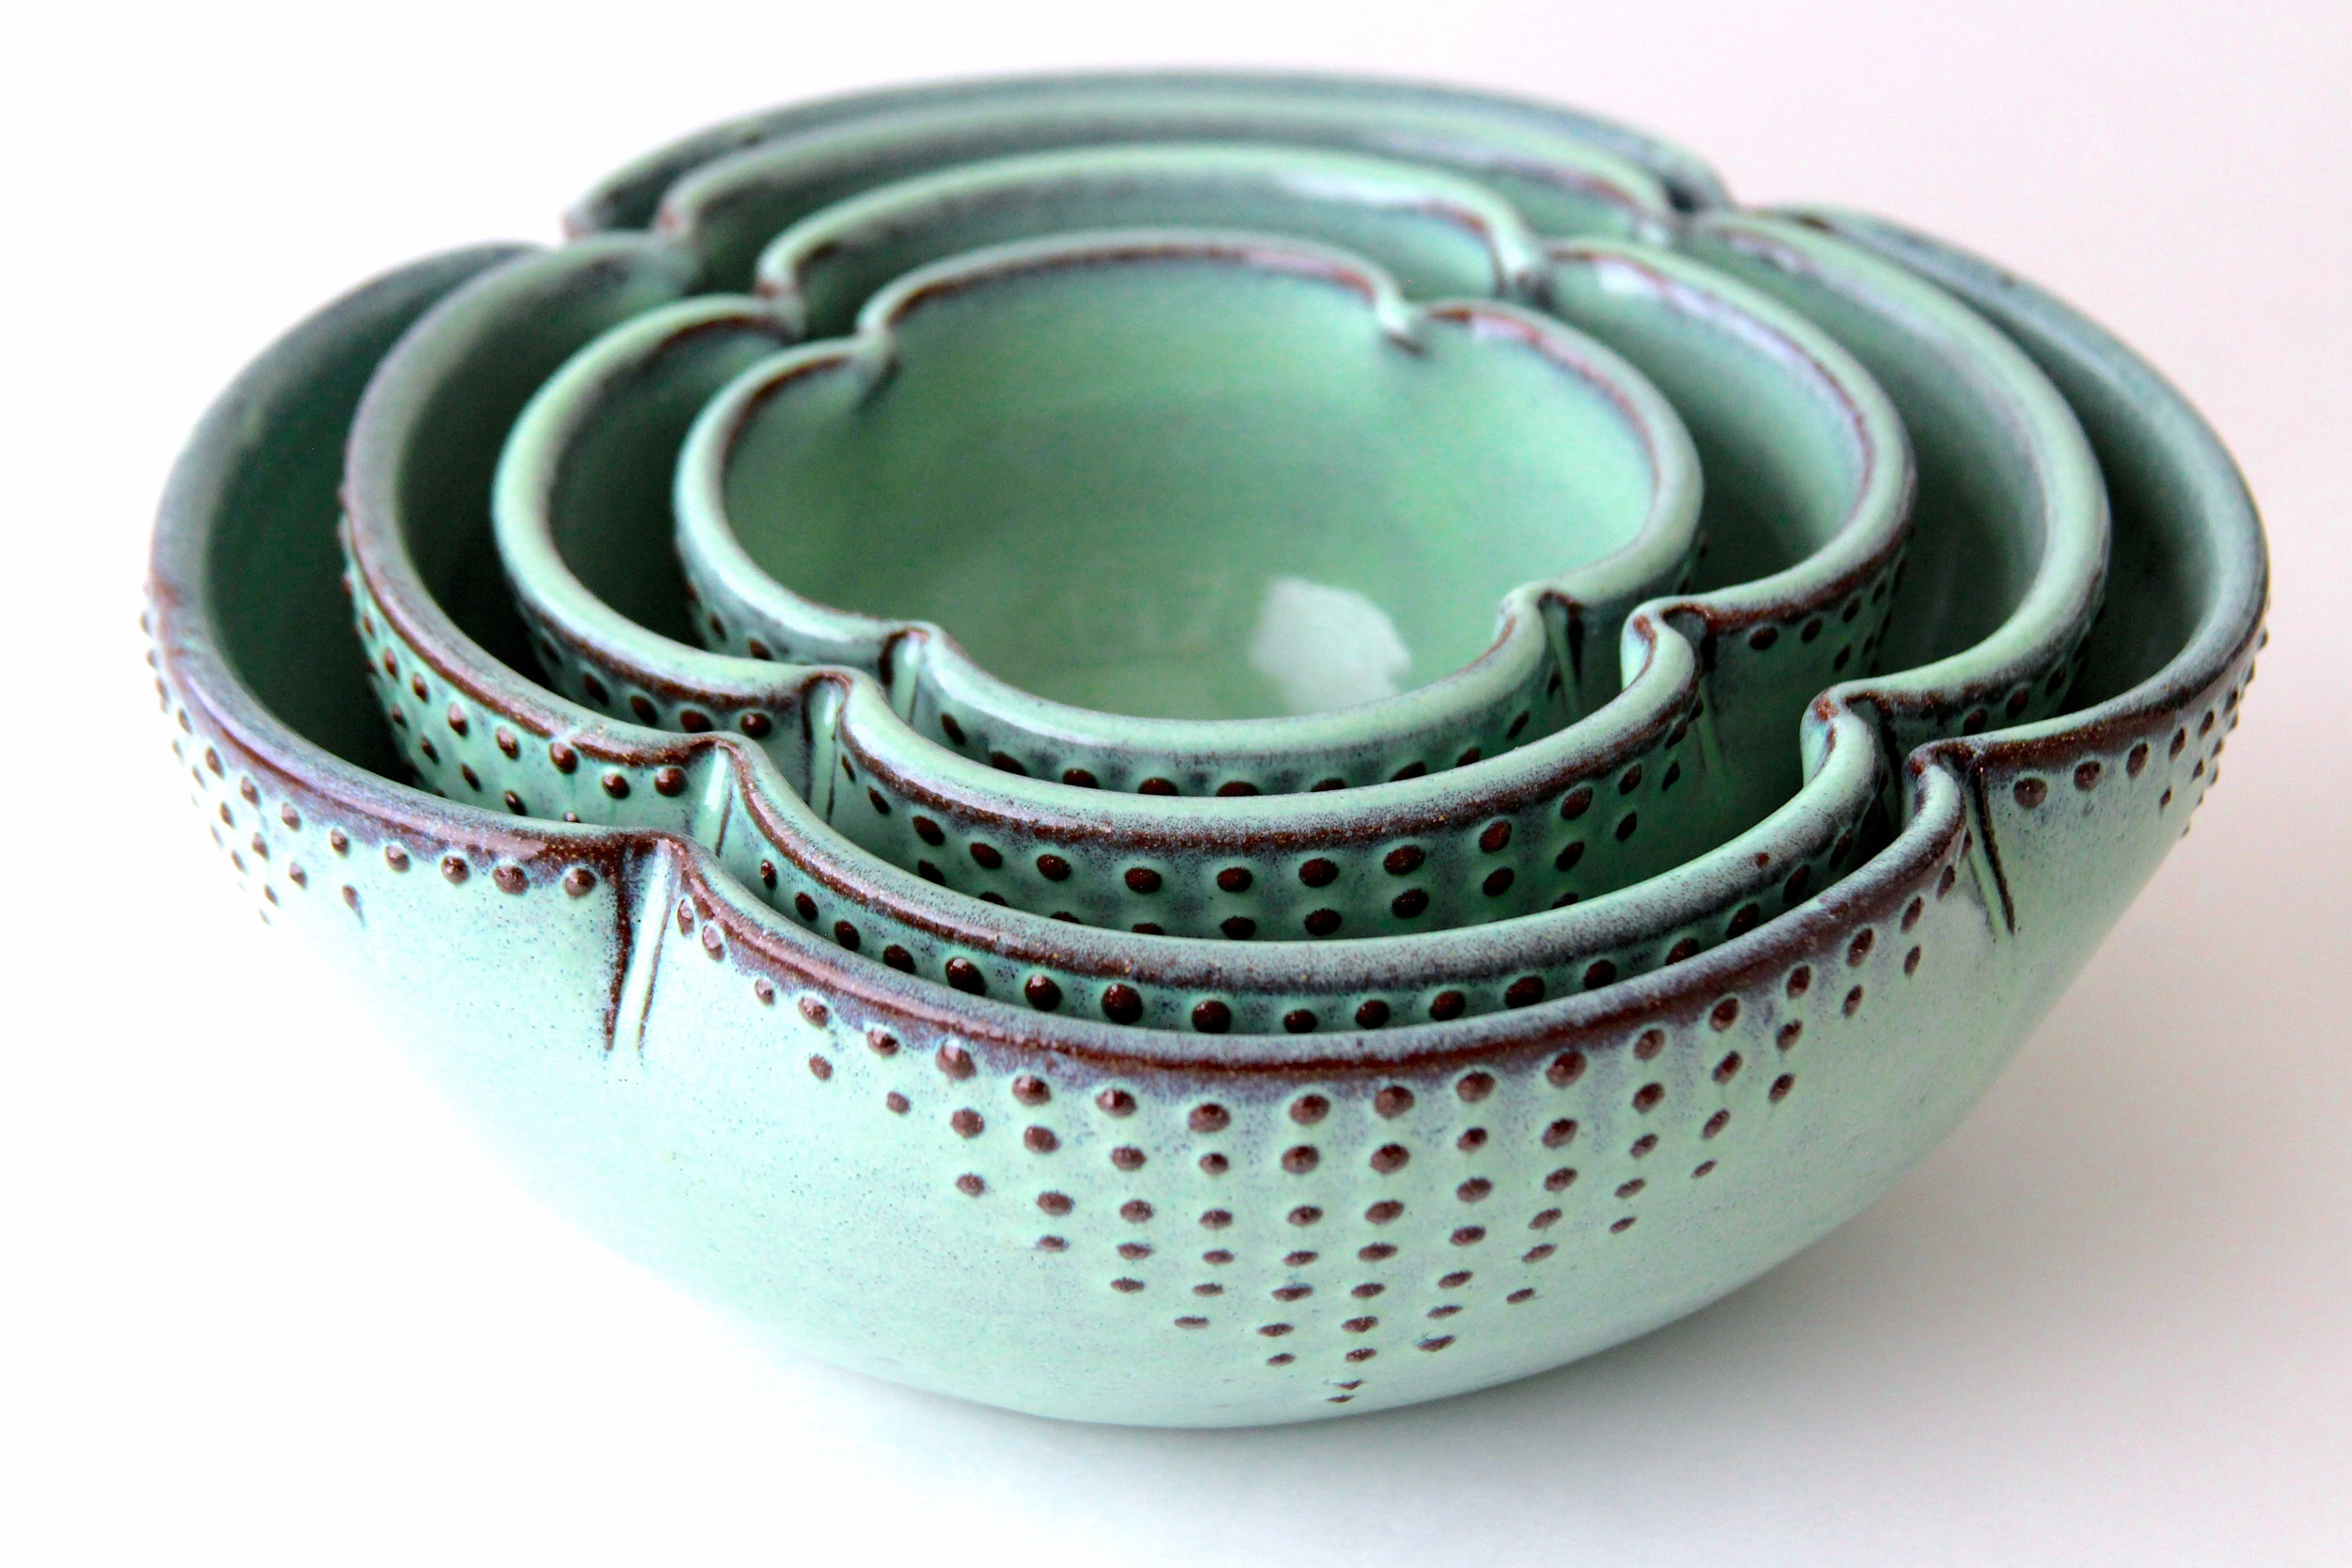 Nesting Bowl Set in Aqua Mist